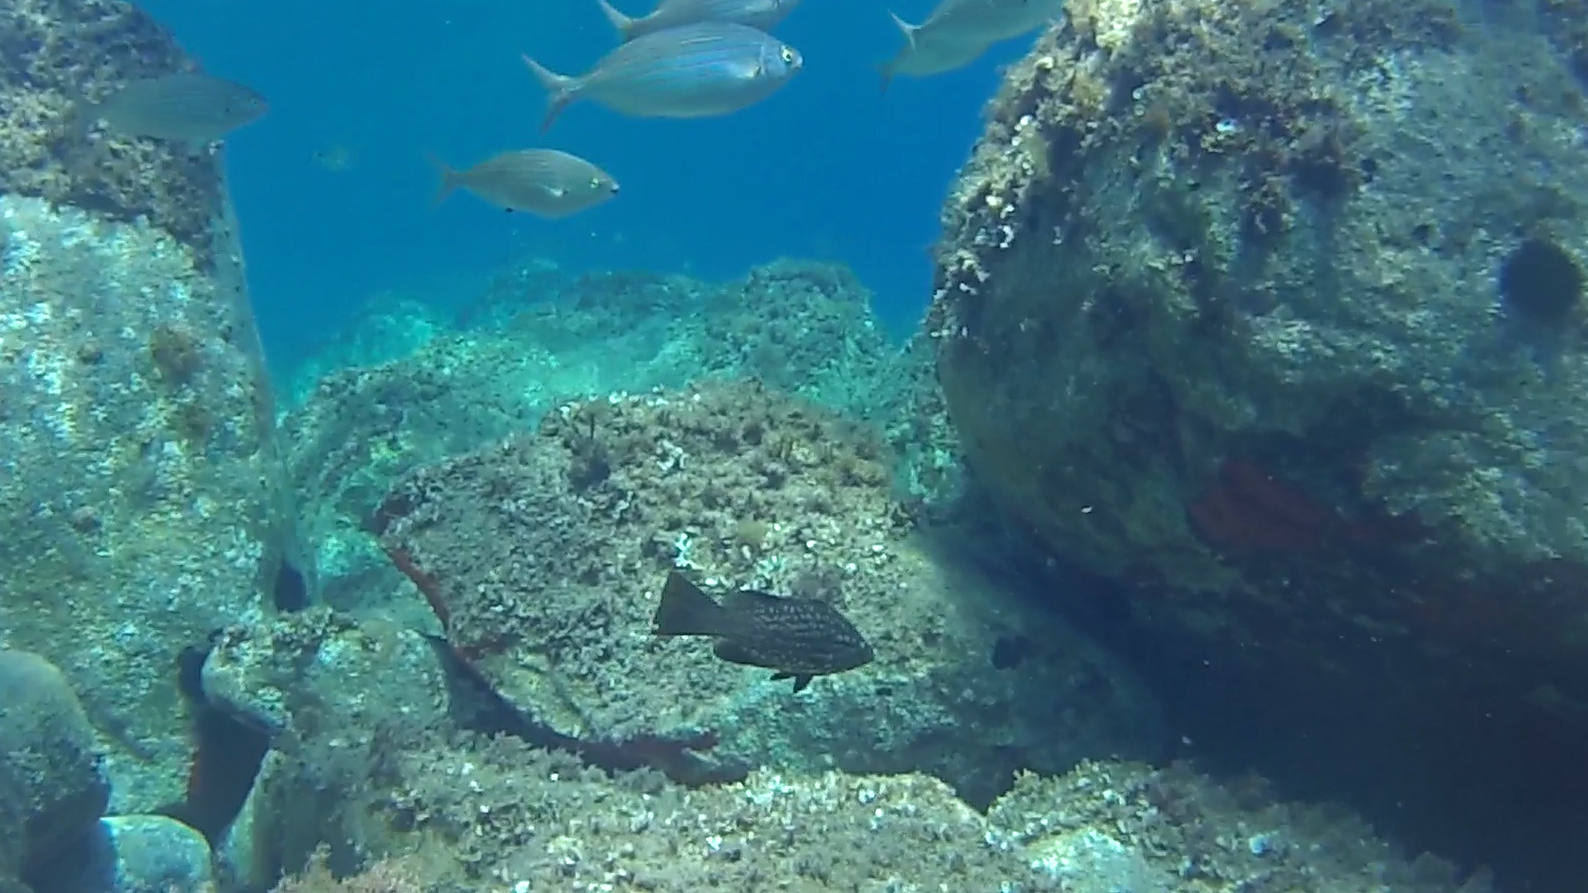 Cernia Dorata Dotto Epinephelus costae Goldblotch grouper intotheblue.it